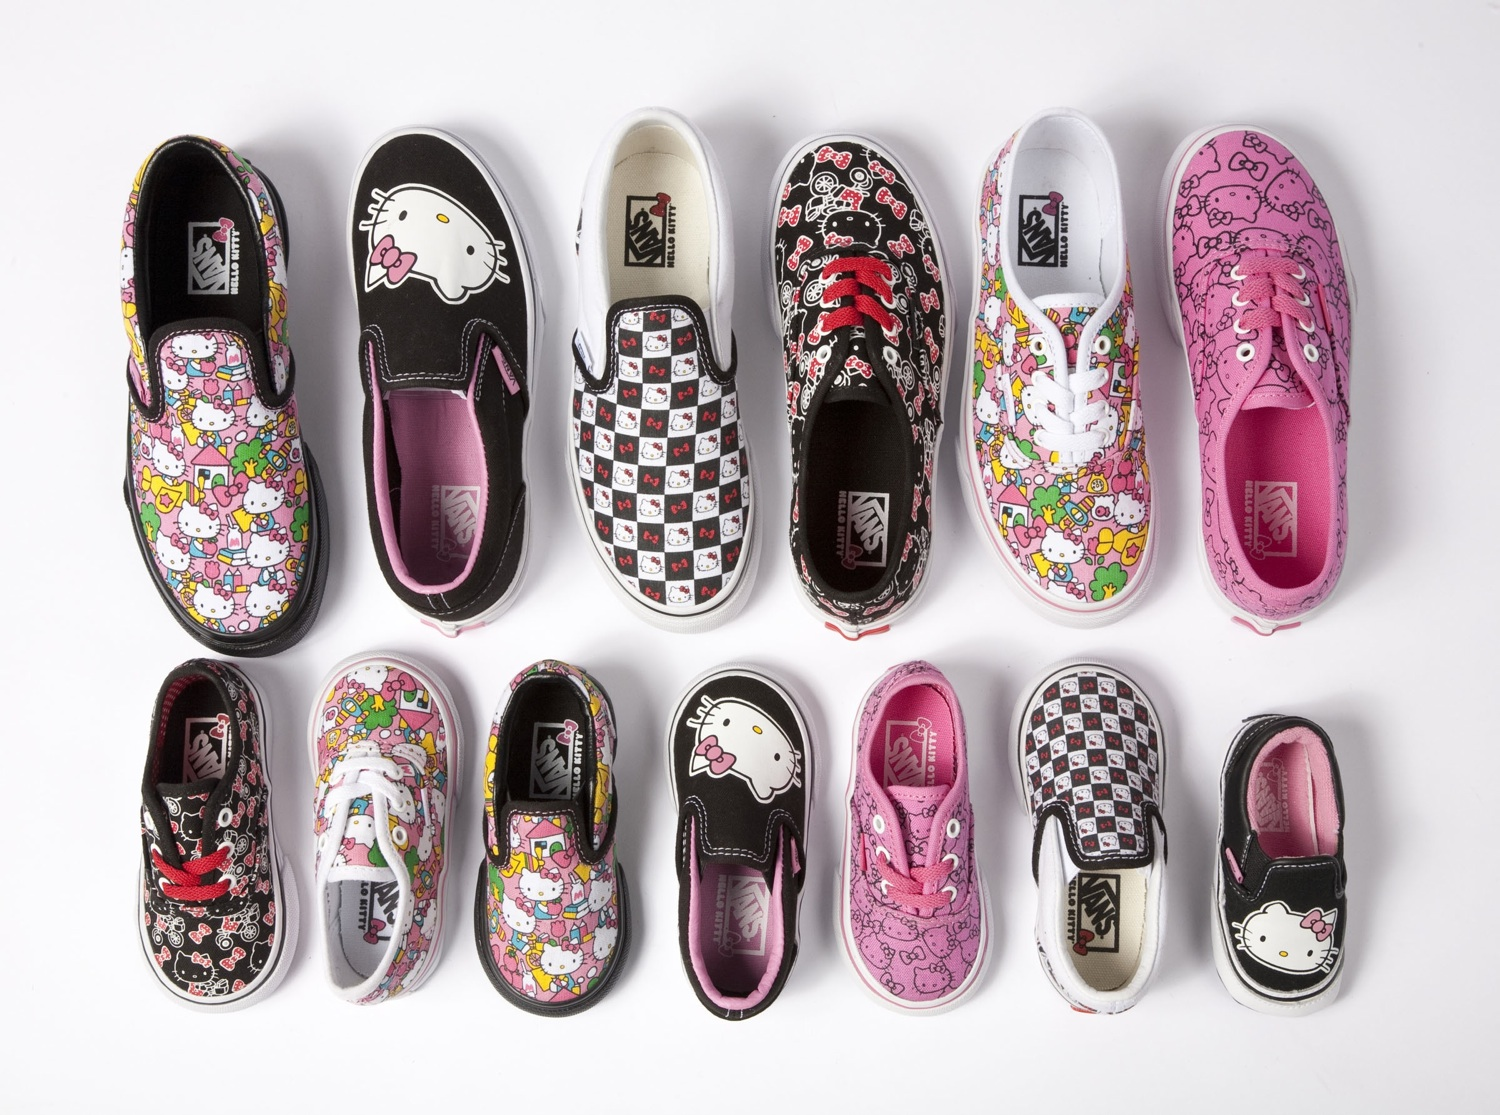 33dbb2dde8 Vans to Release Hello Kitty Kicks – The Next Kid Thing